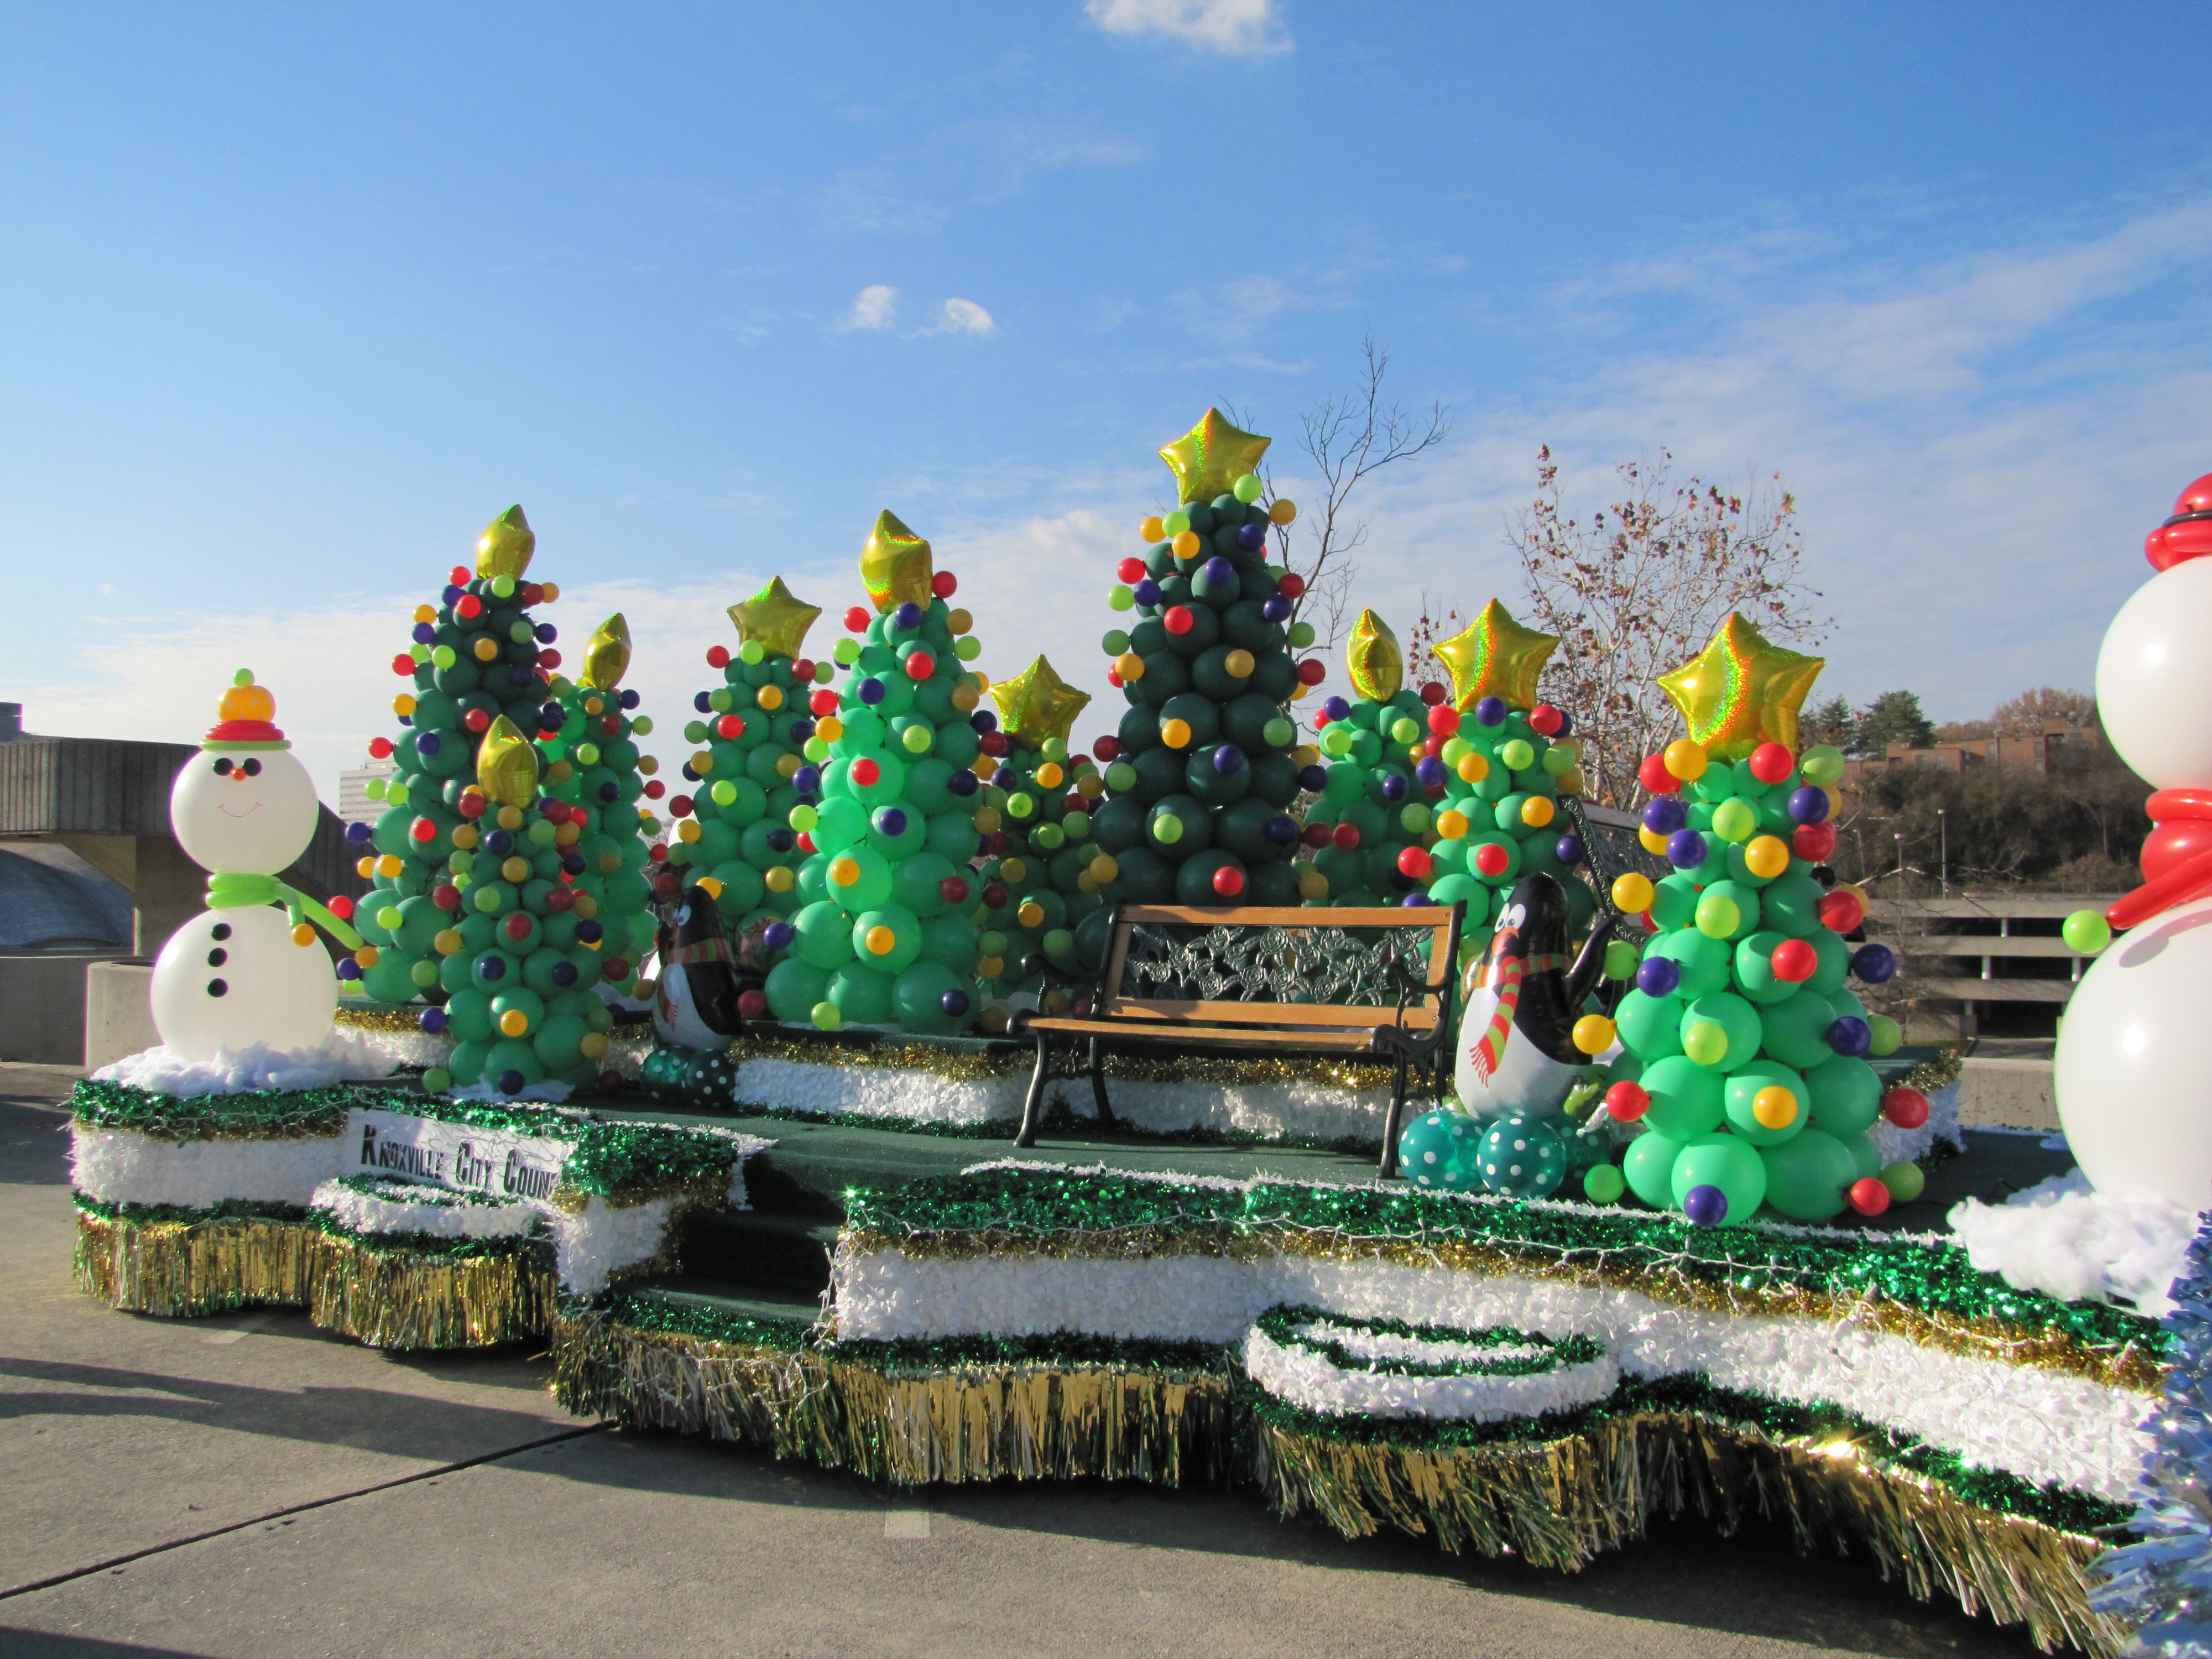 Christmas parade ideas - Christmas floats photoblogging the annual knoxville christmas parade knoxville parade ideas pinterest christmas float ideas churches and